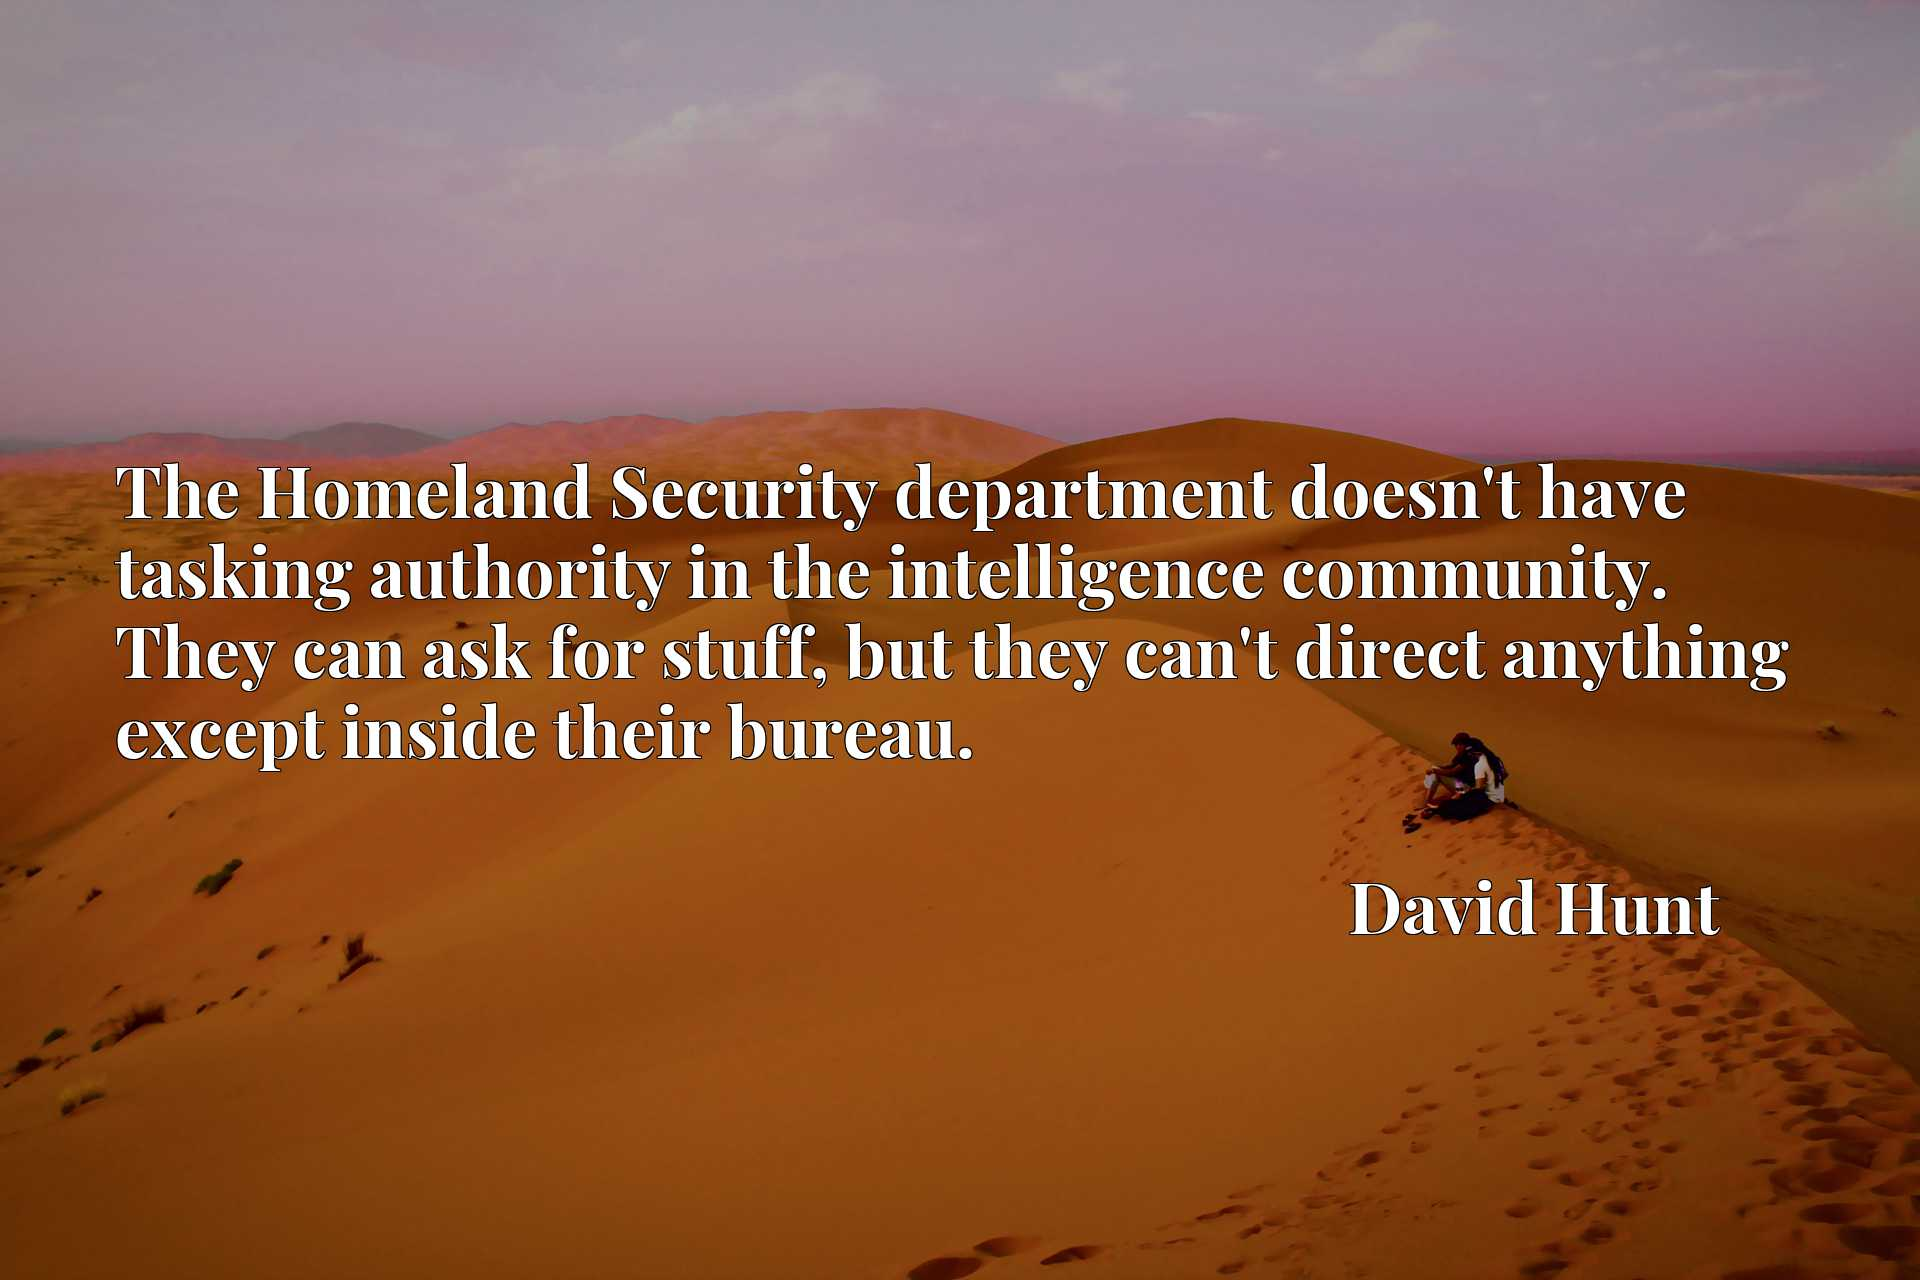 The Homeland Security department doesn't have tasking authority in the intelligence community. They can ask for stuff, but they can't direct anything except inside their bureau.